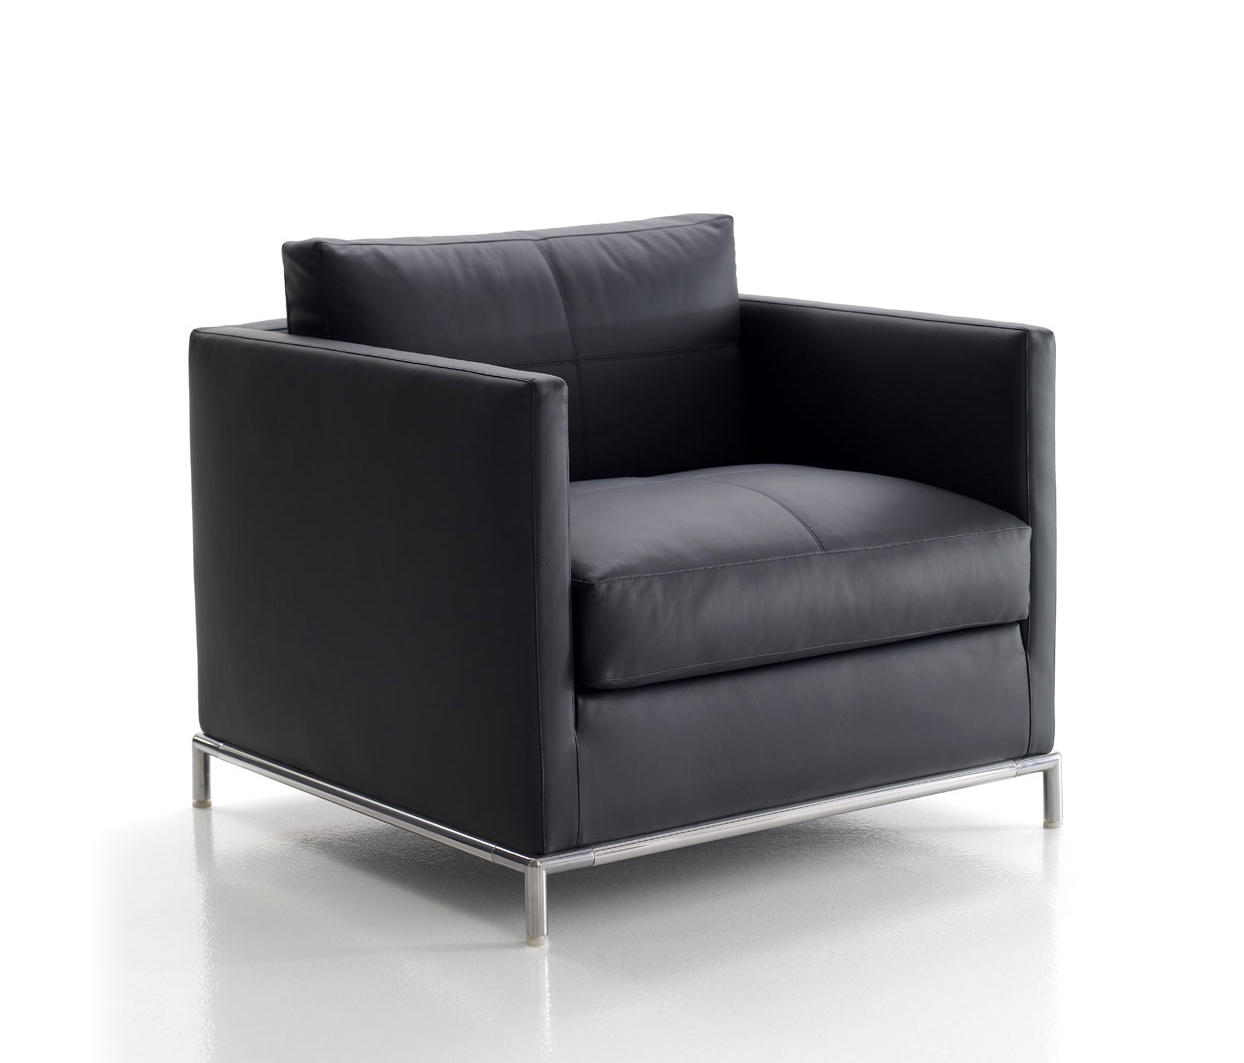 george armchair poltrone lounge b b italia architonic. Black Bedroom Furniture Sets. Home Design Ideas